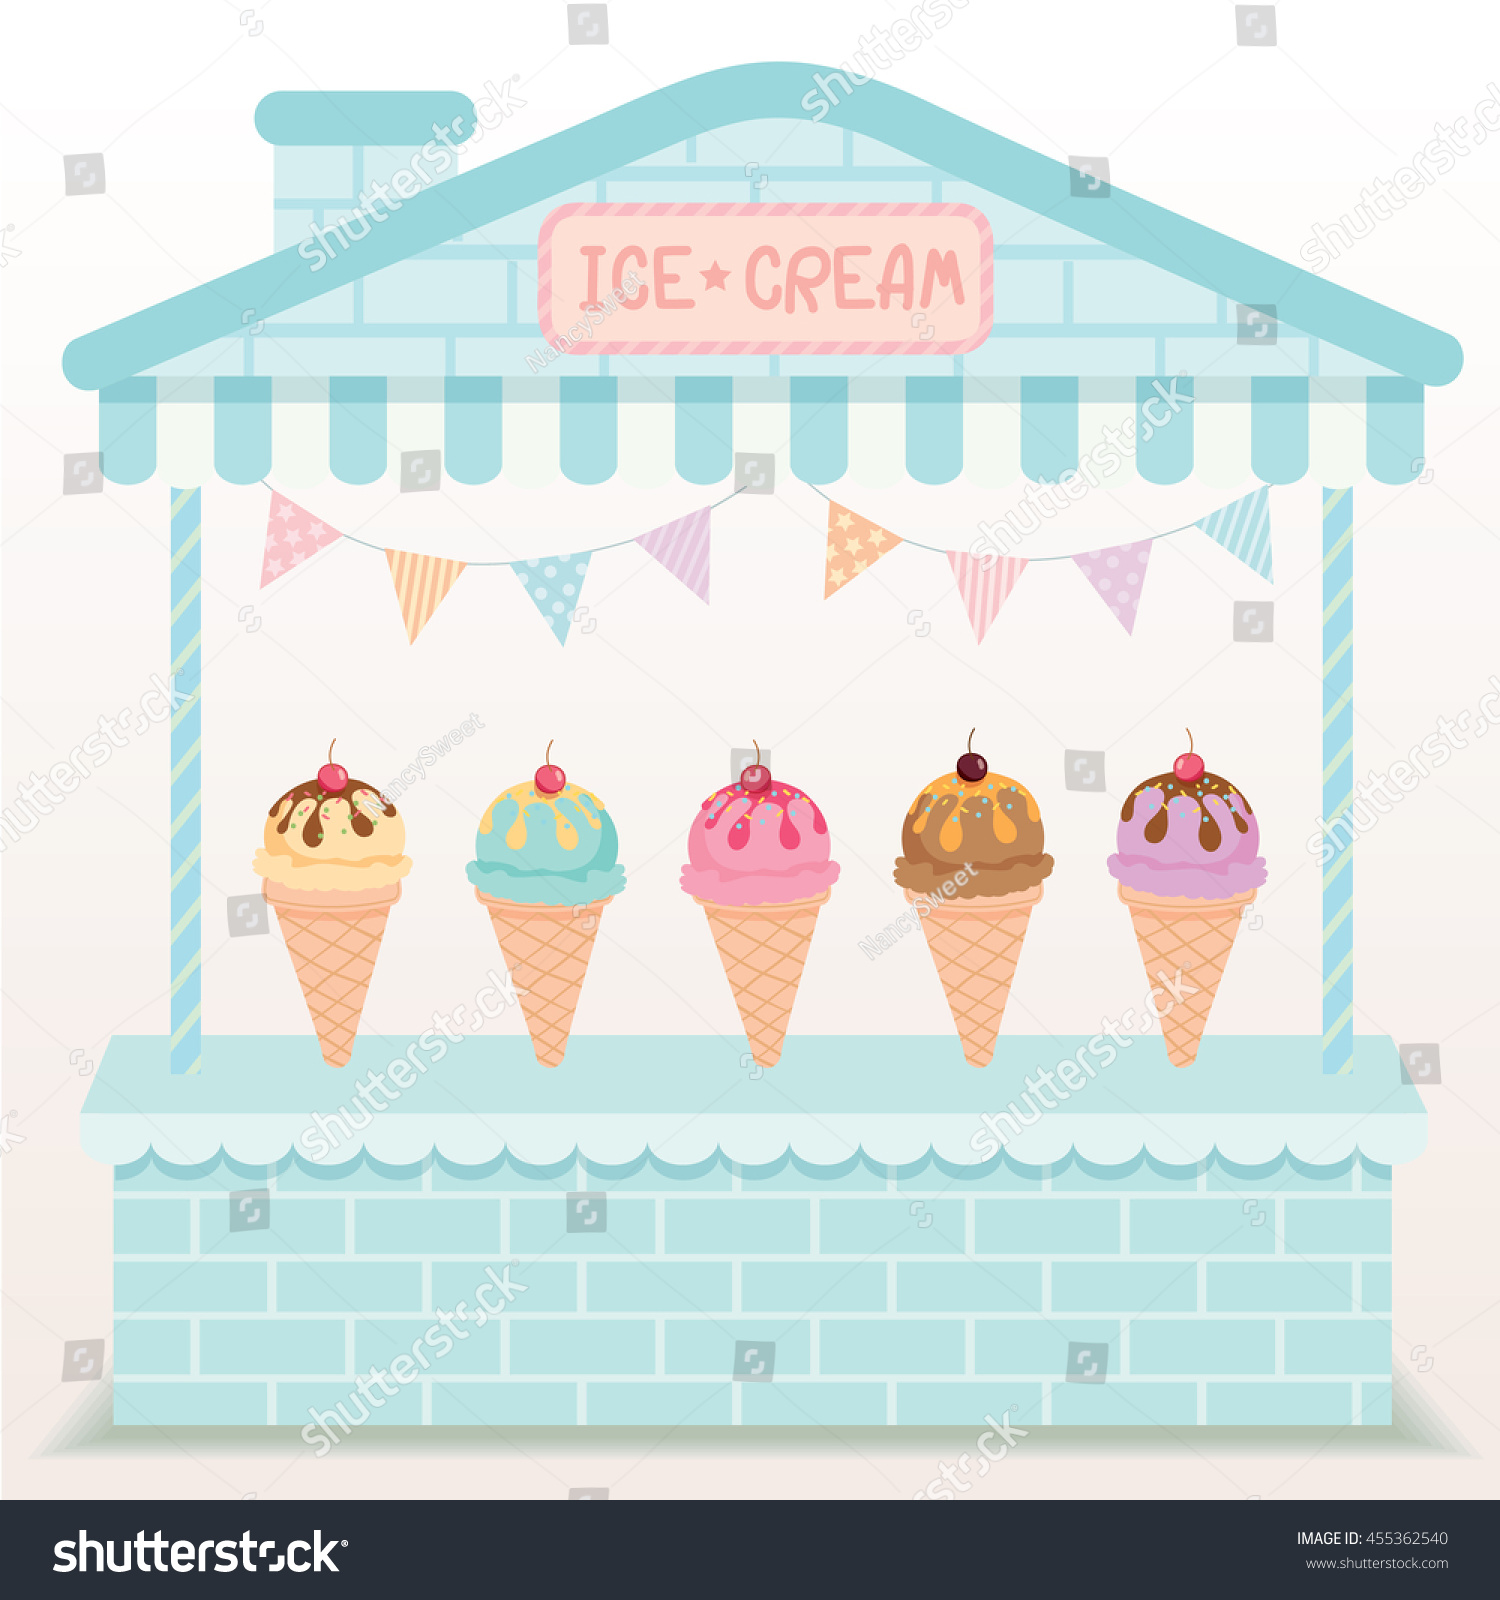 illustration various ice cream cone cafe display on cute house booth design with blue and - Cyan Cafe Interior